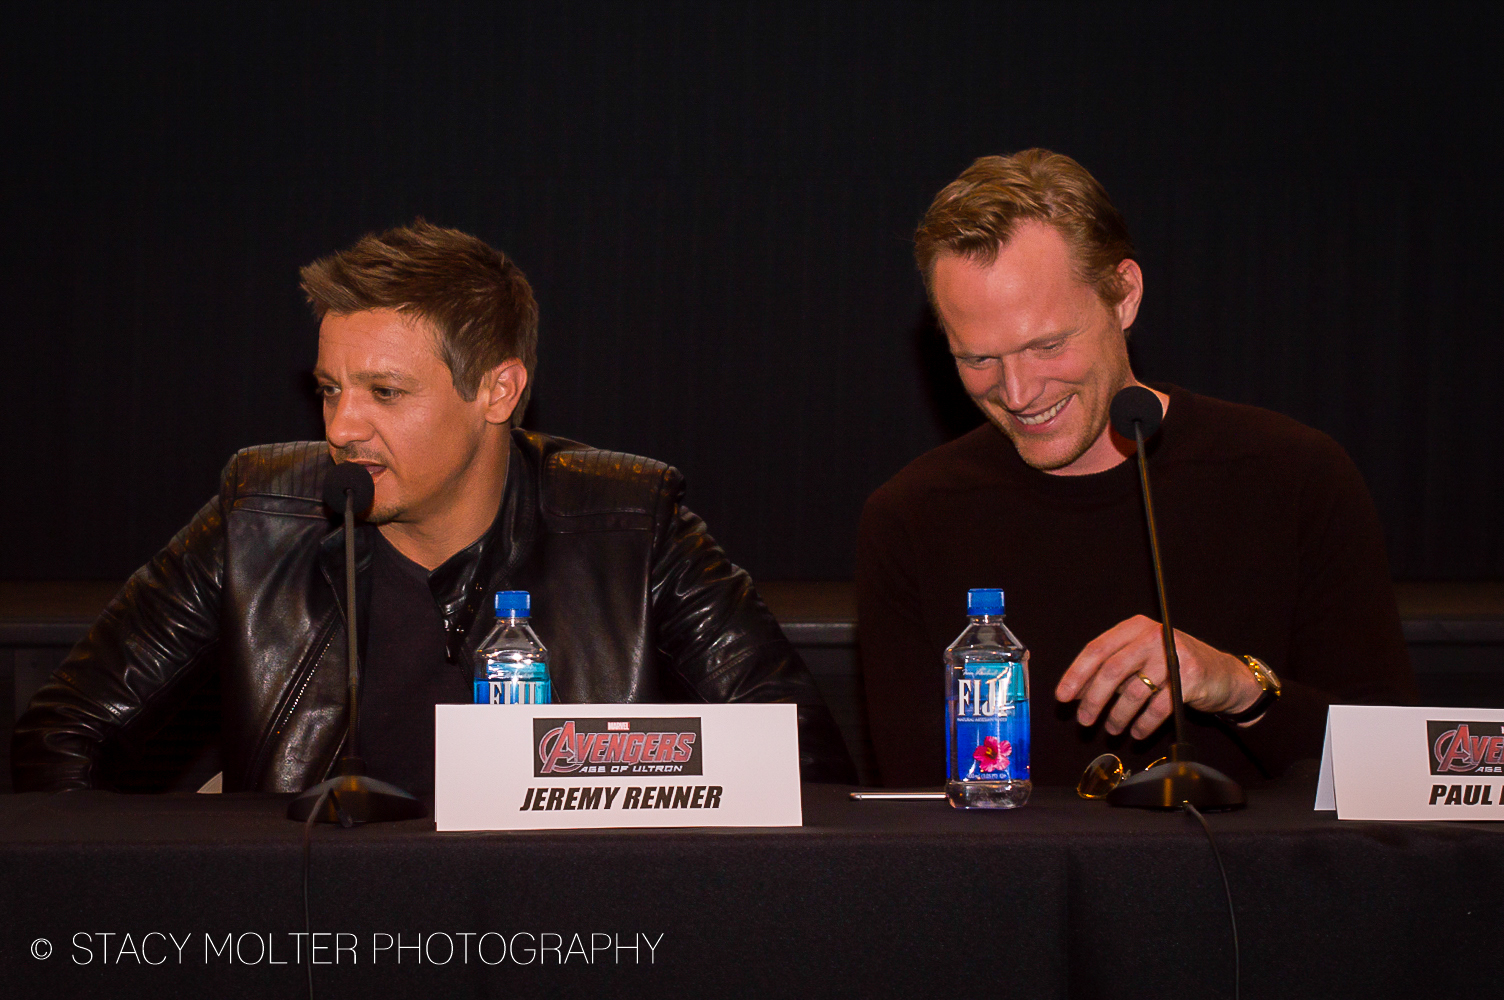 Jeremy Renner & Paul Bettany - Avengers Age of Ultron Press Conference Junket